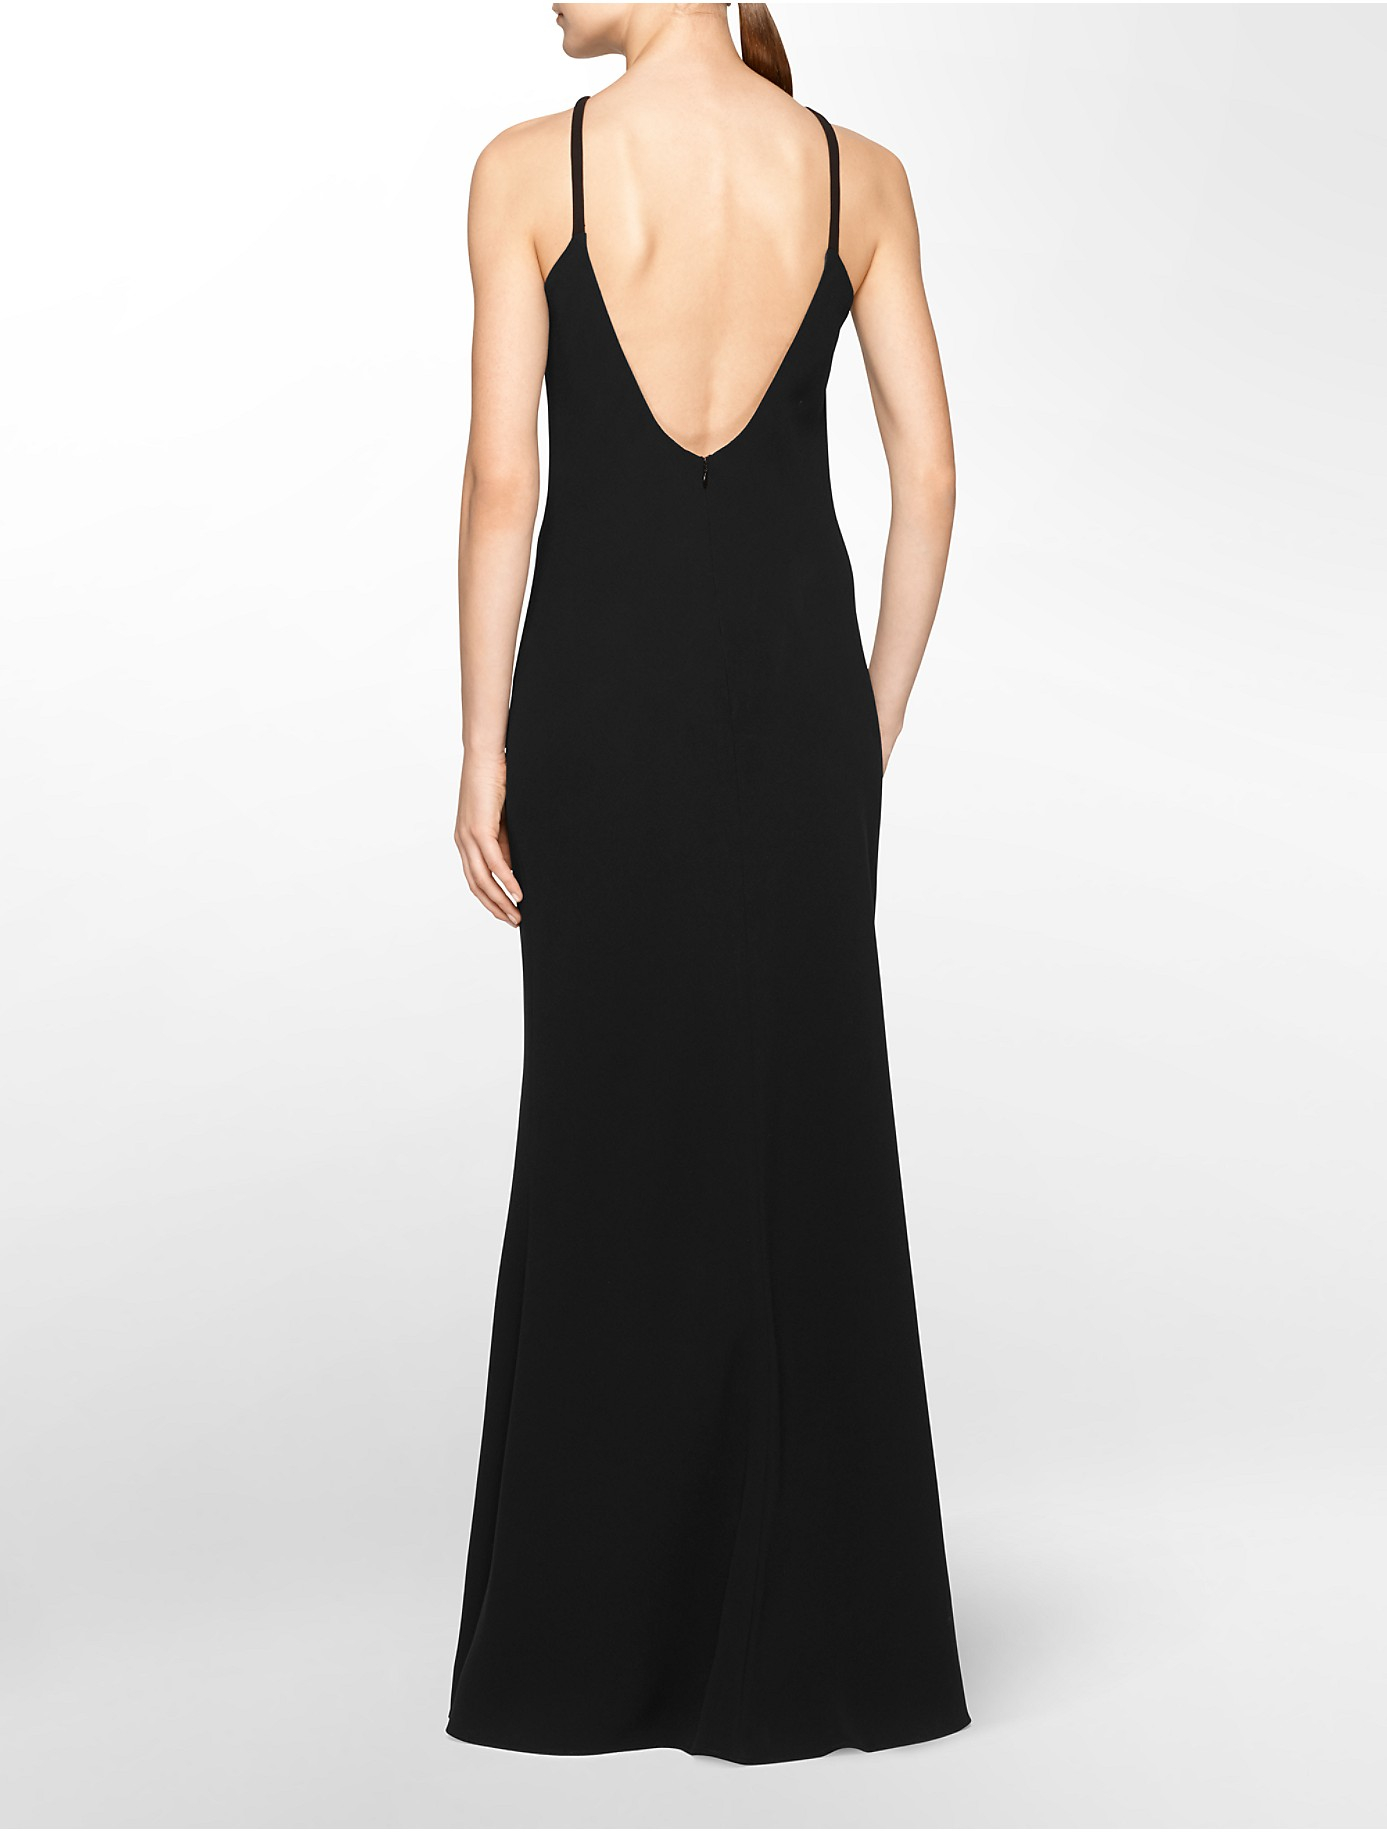 Calvin klein White Label Low Back Halter Neck Gown in Black | Lyst